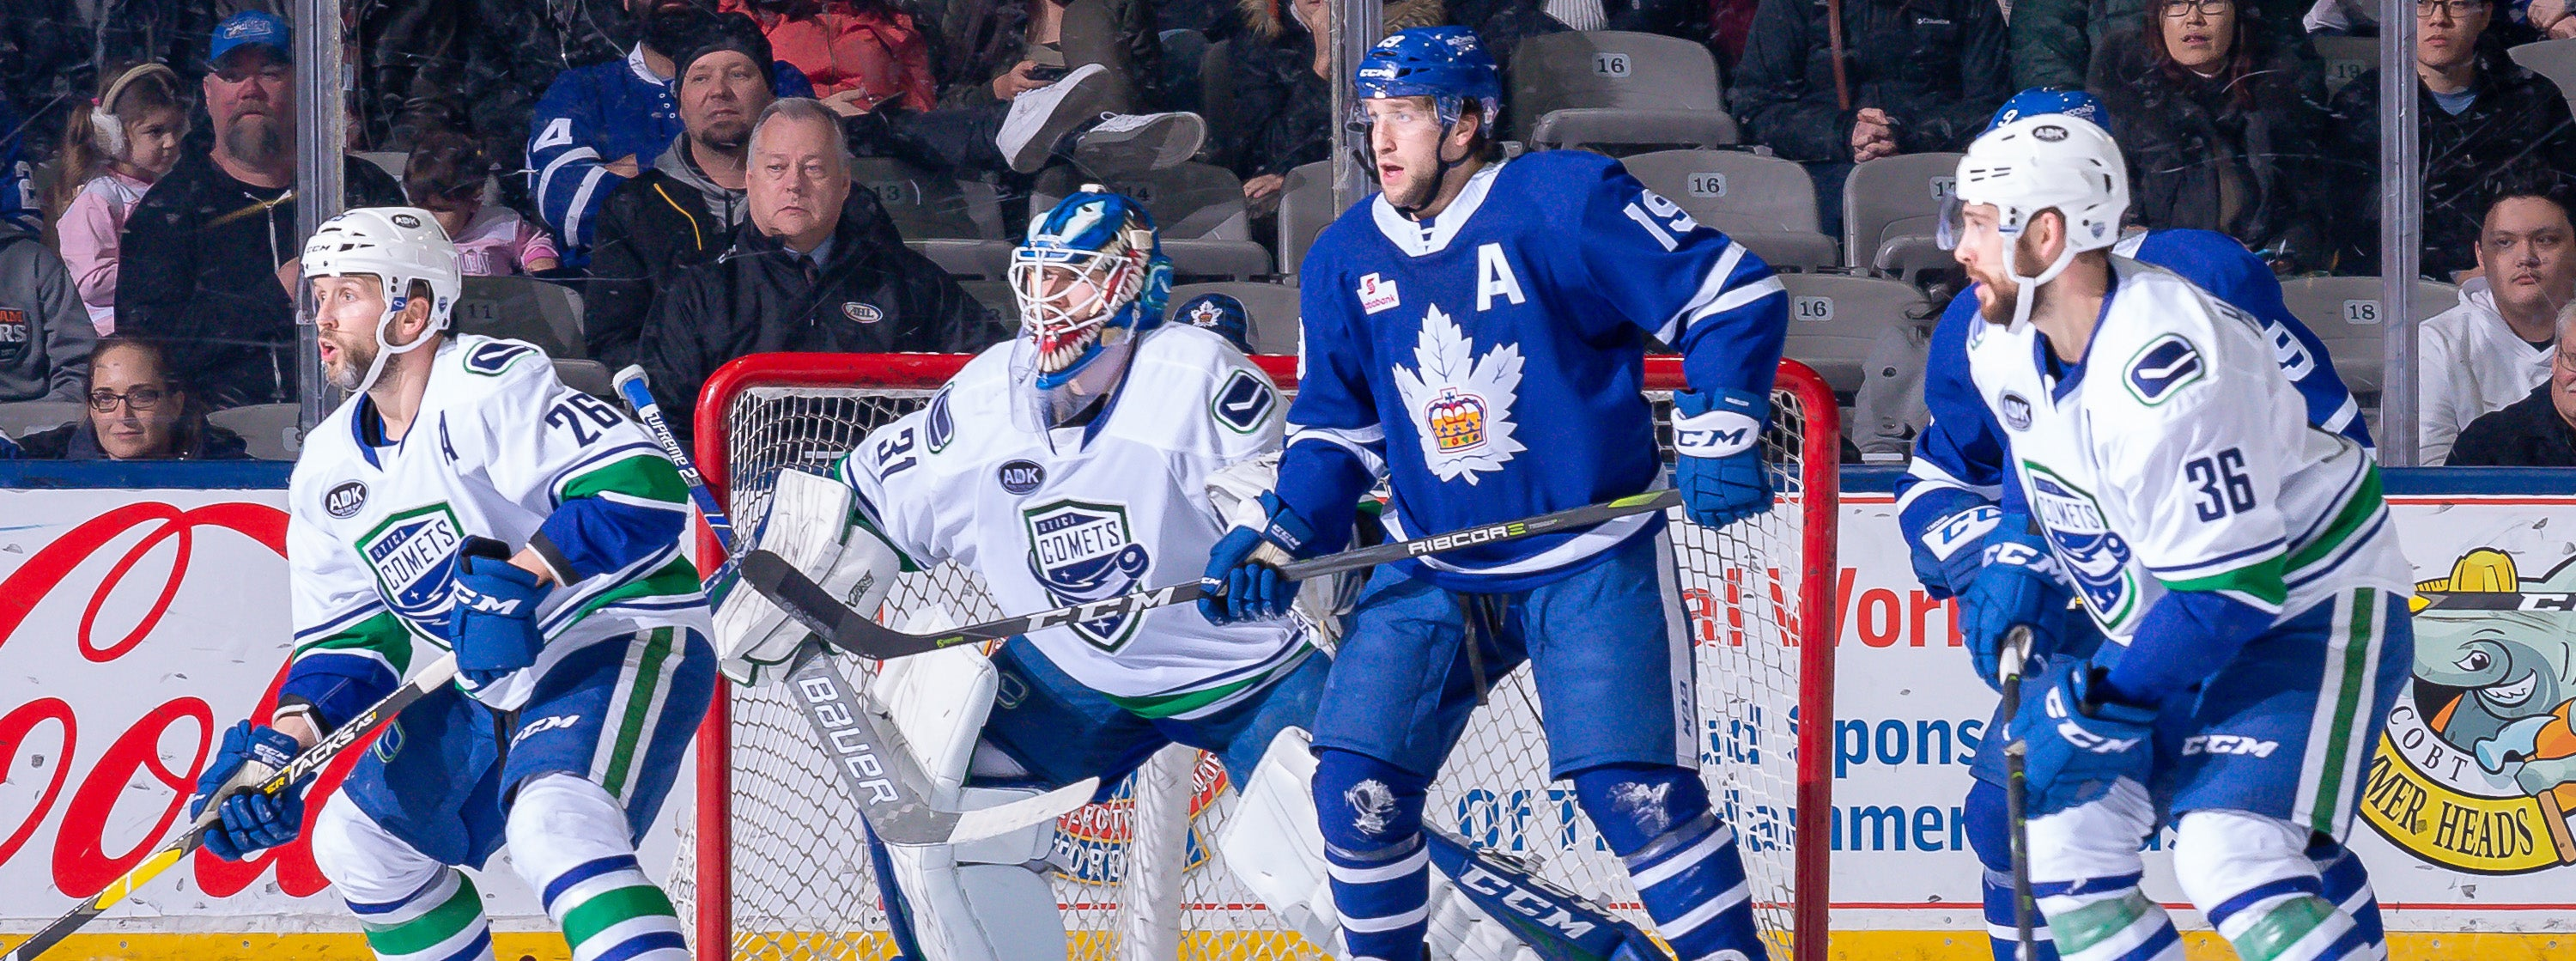 COMETS STREAK HALTED BY MARLIES